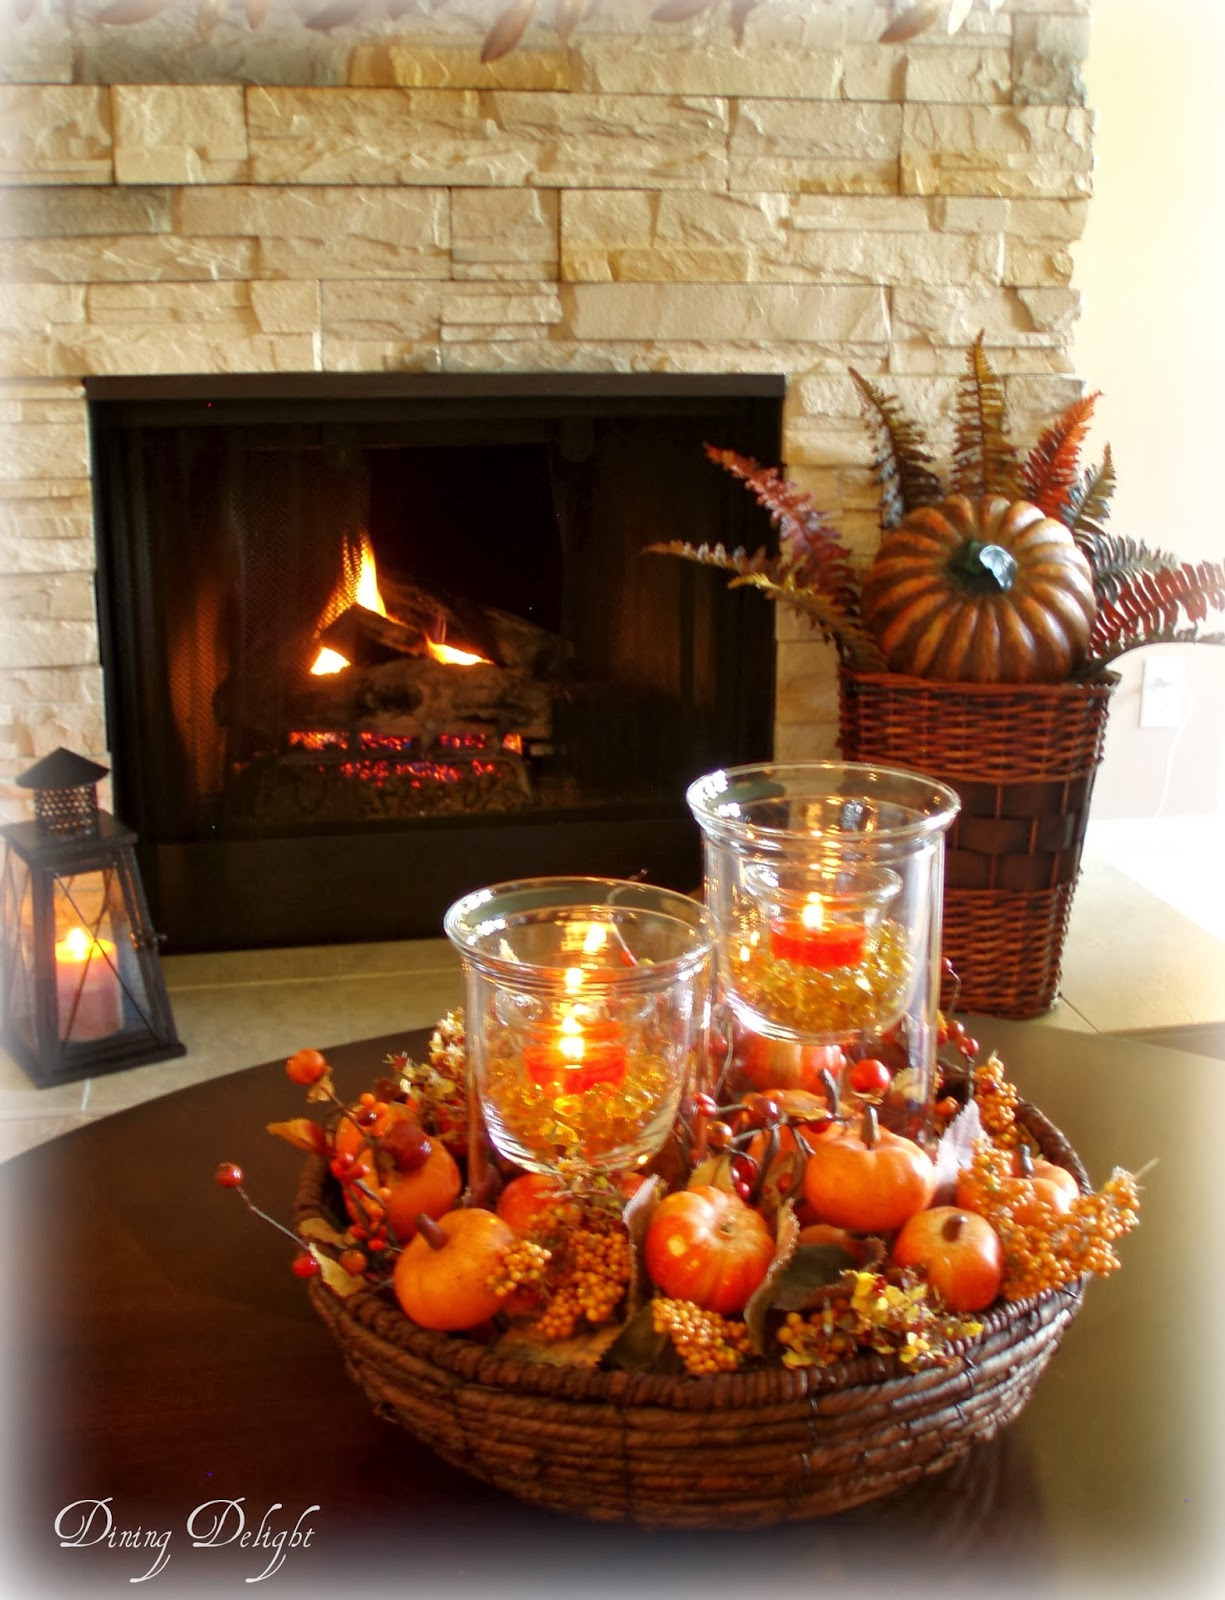 Best Dining Delight Fall Coffee Table Centerpiece This Month